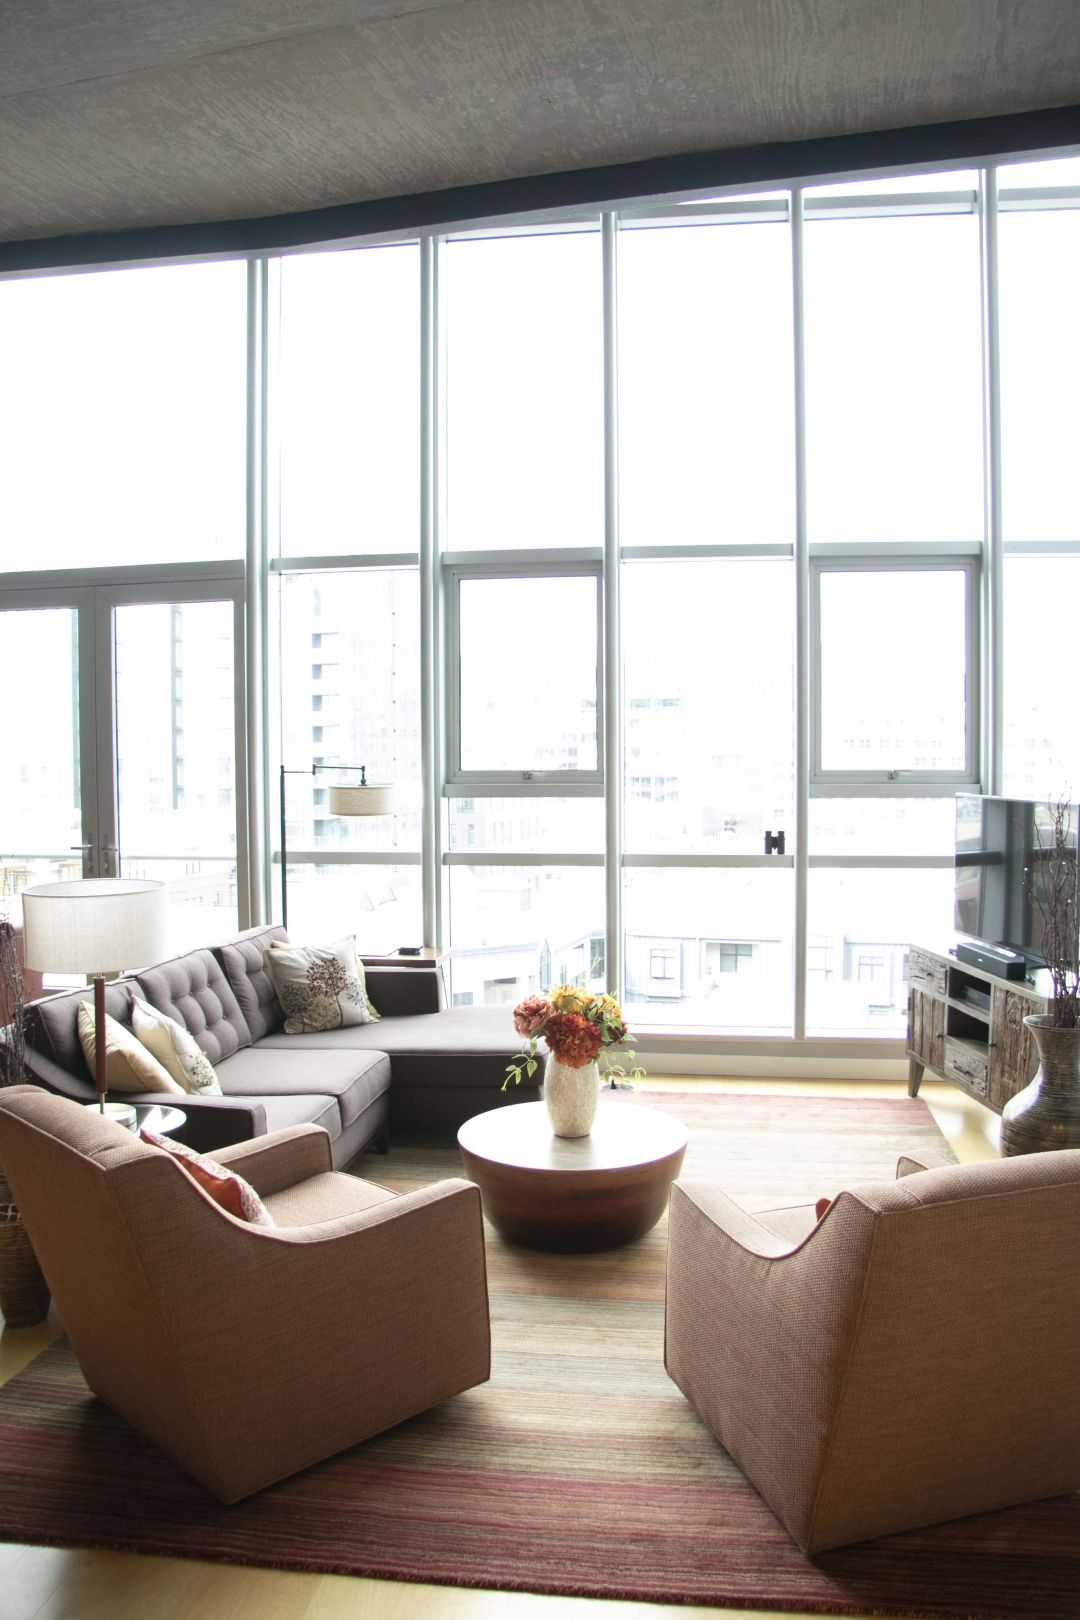 6 Design Tips for Creating an Insta-Worthy Living Room | Portland ...